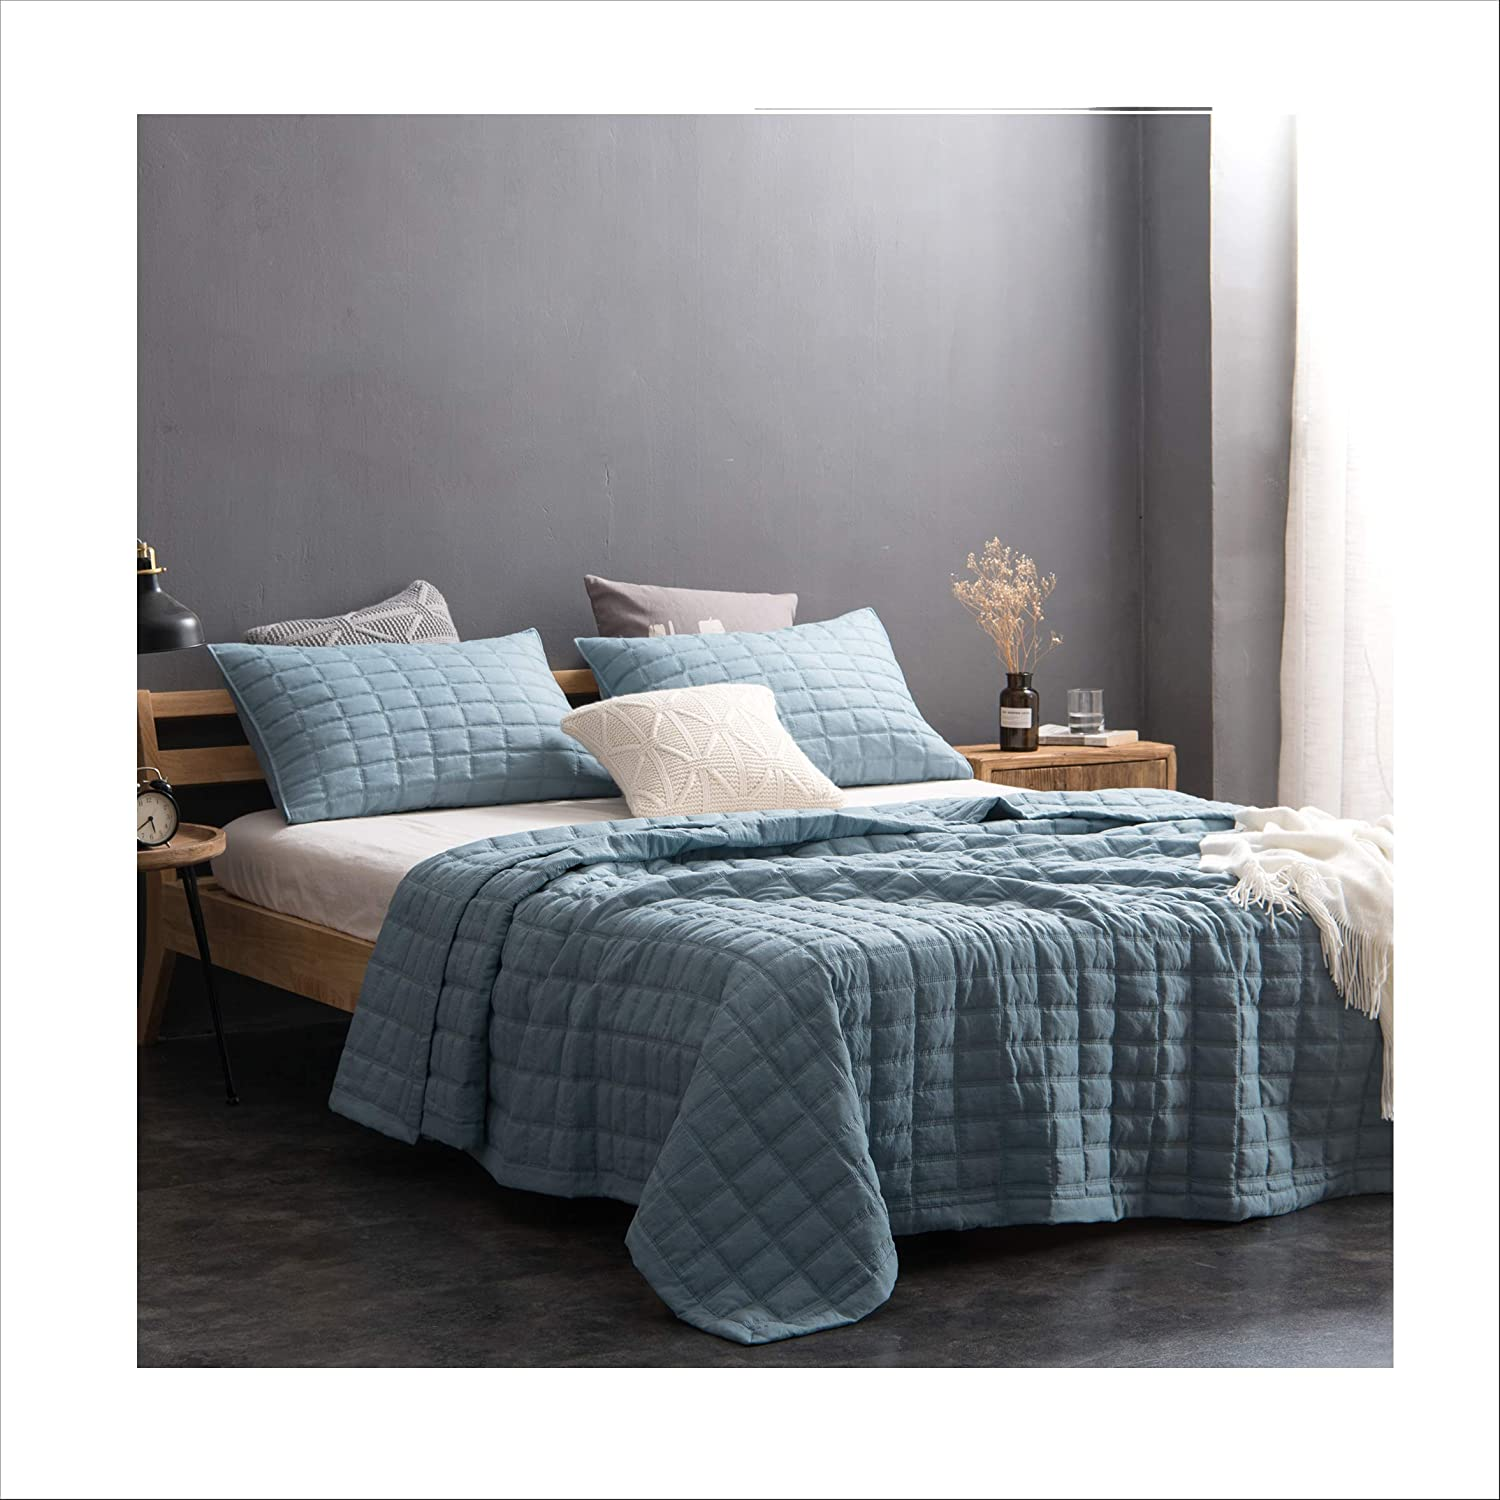 King KASENTEX Quilt Mini Set-Stone Washed-Super Soft Bedspread-Light Weight-Hypoallergenic-White Down Alternative Microfiber Fill-Machine Washable Solid Grey 2 King Shams 2 King